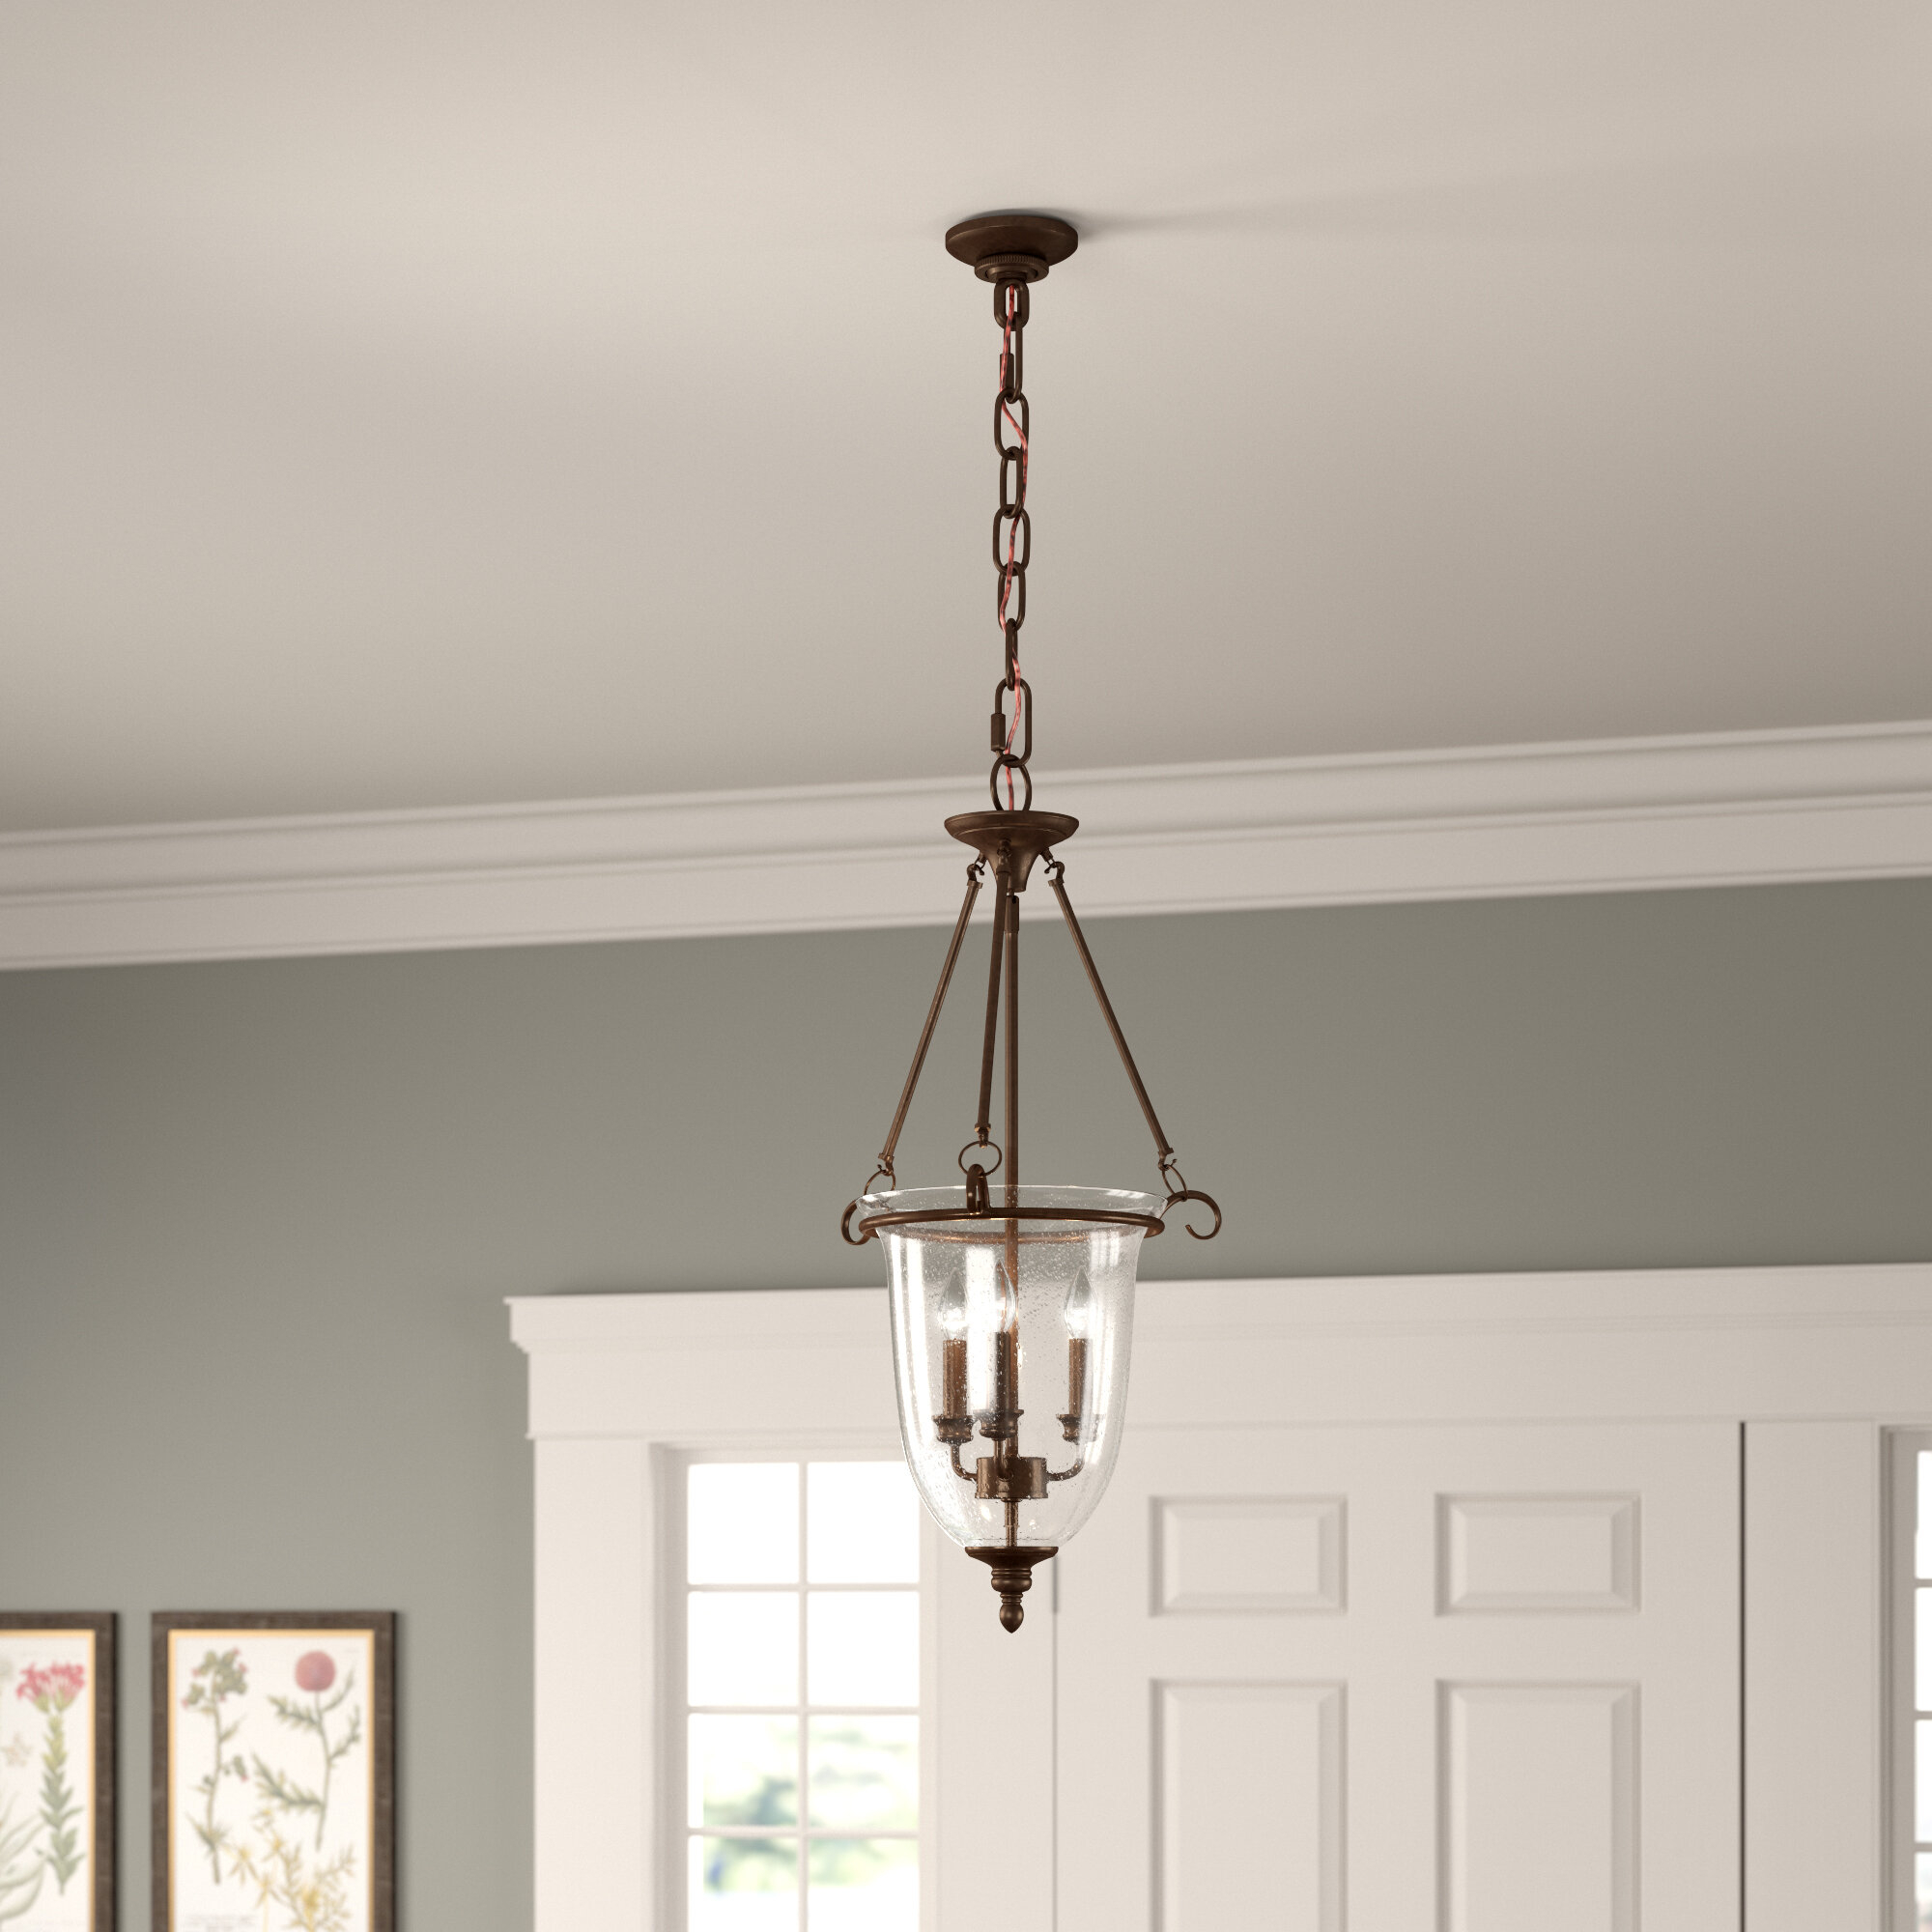 3-Light Single Urn Pendant regarding 3-Light Single Urn Pendants (Image 3 of 30)